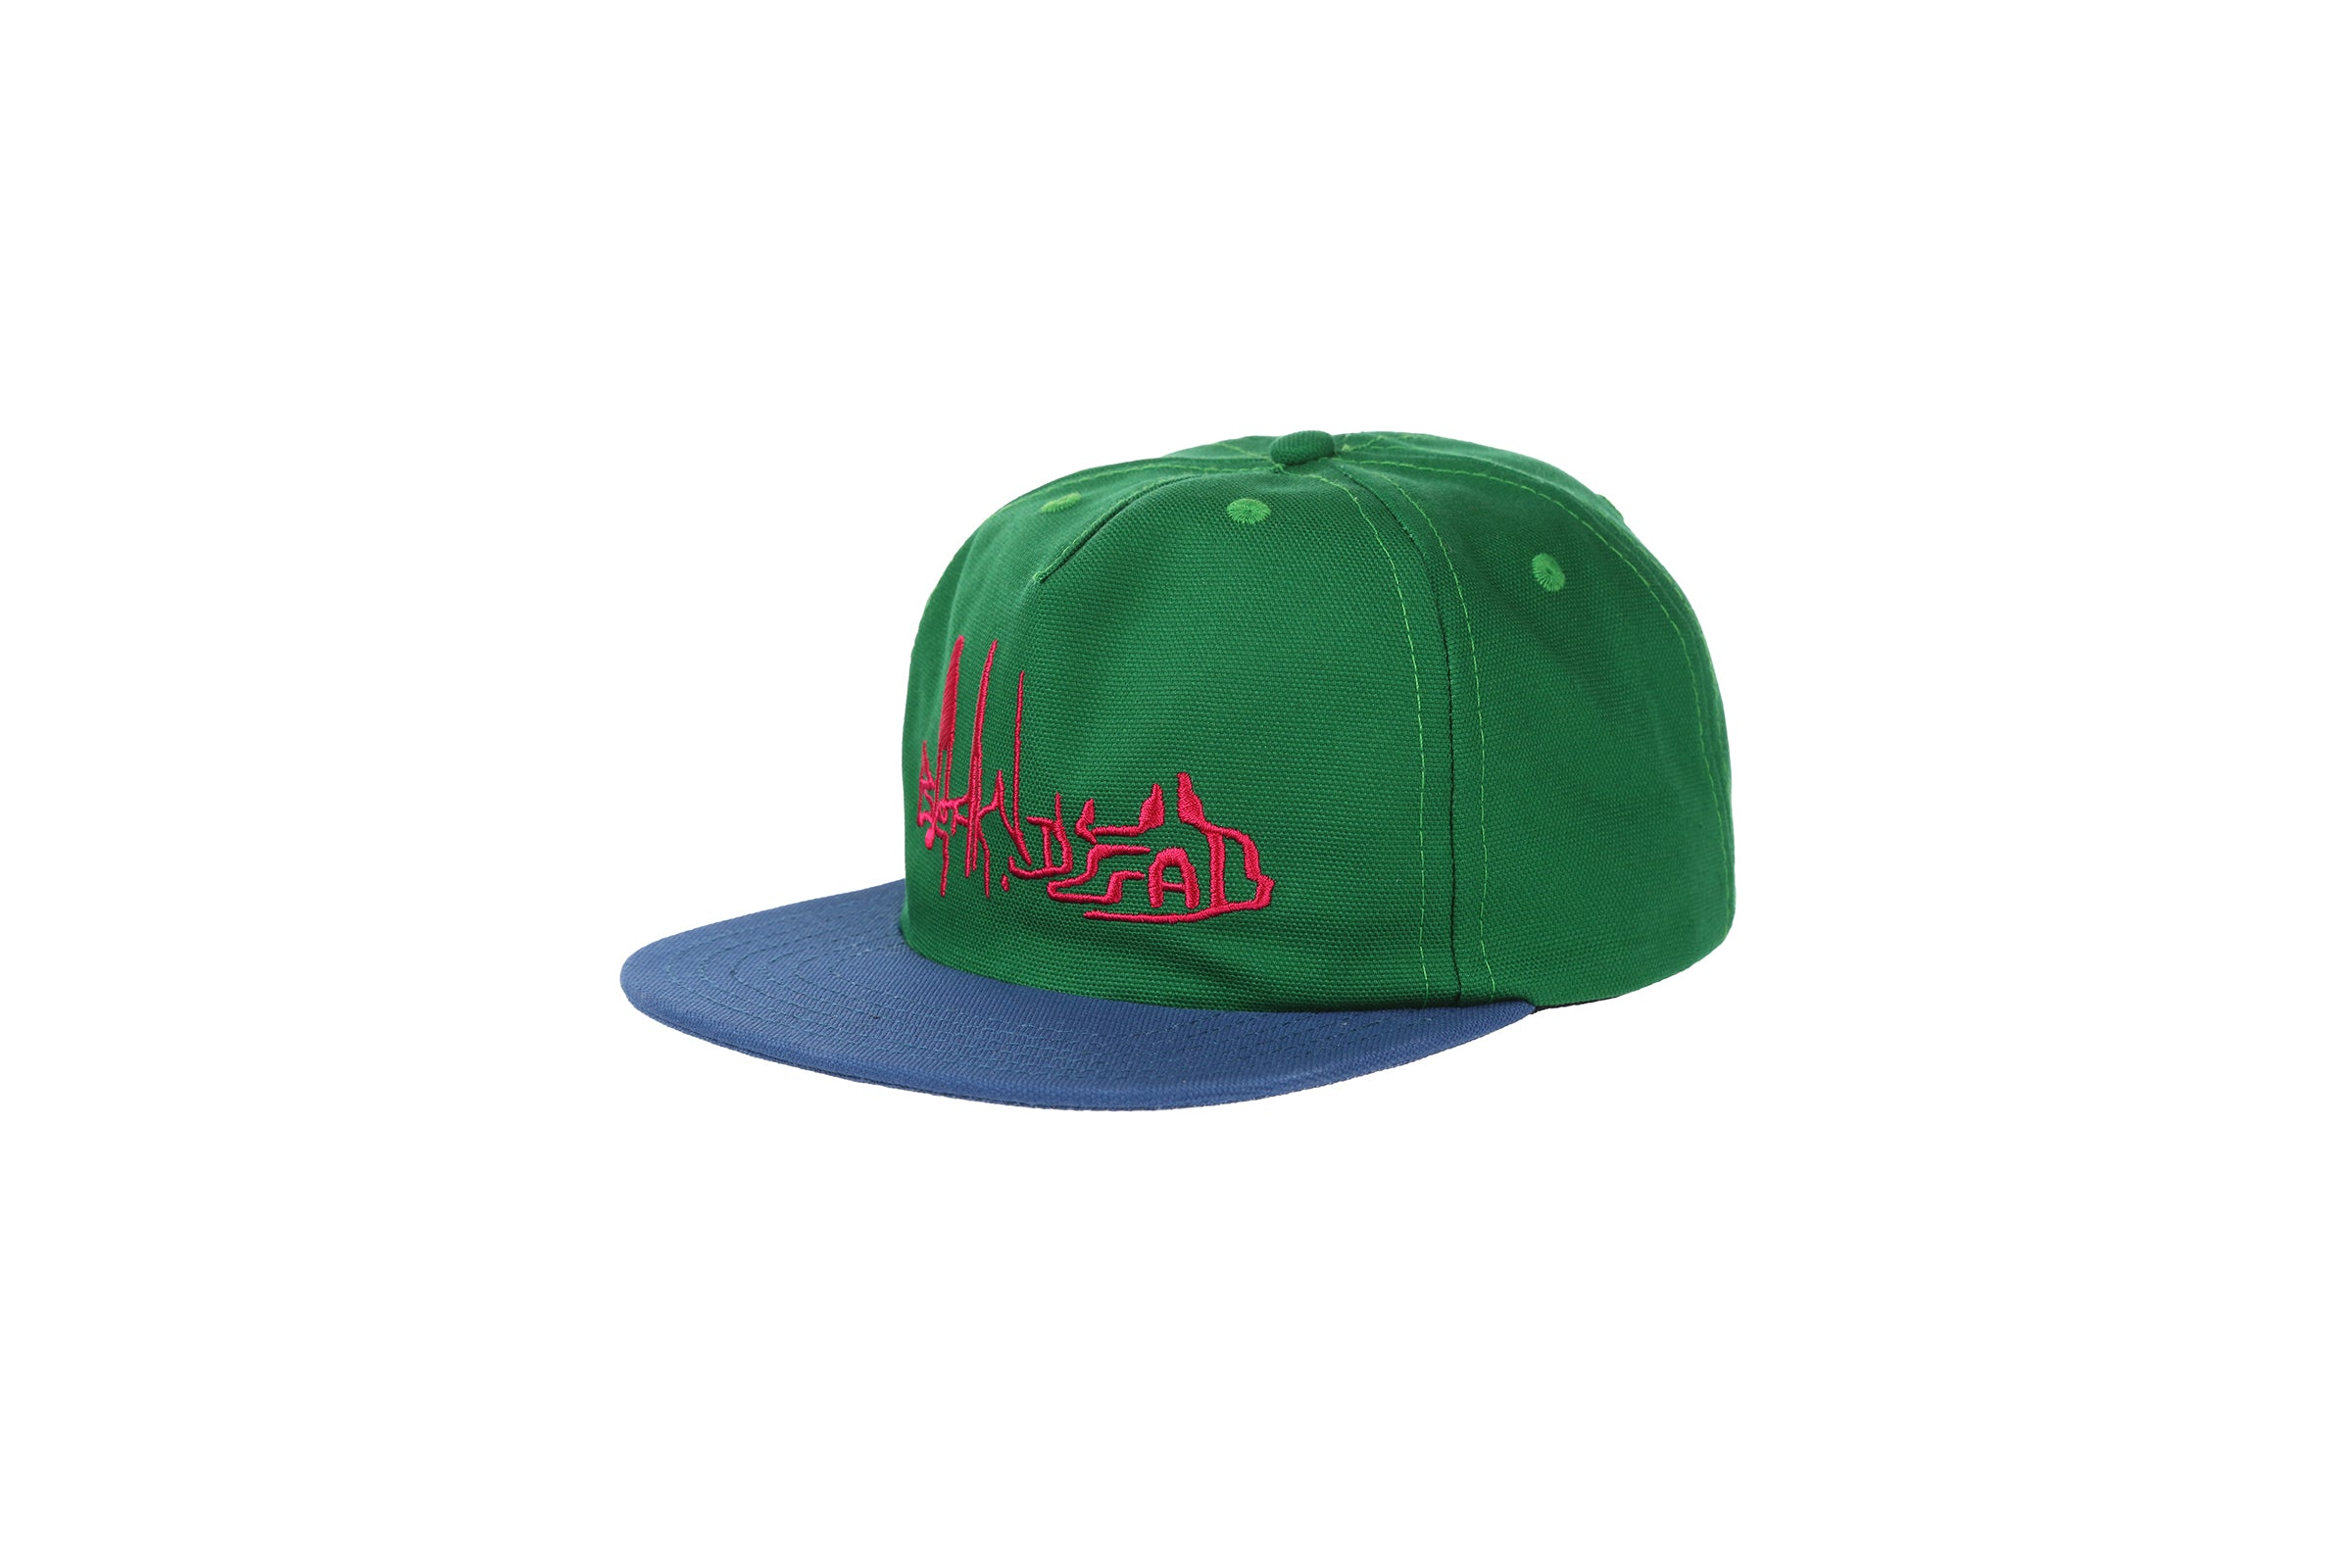 Braindead Distorted Text Five-Panel Strapback